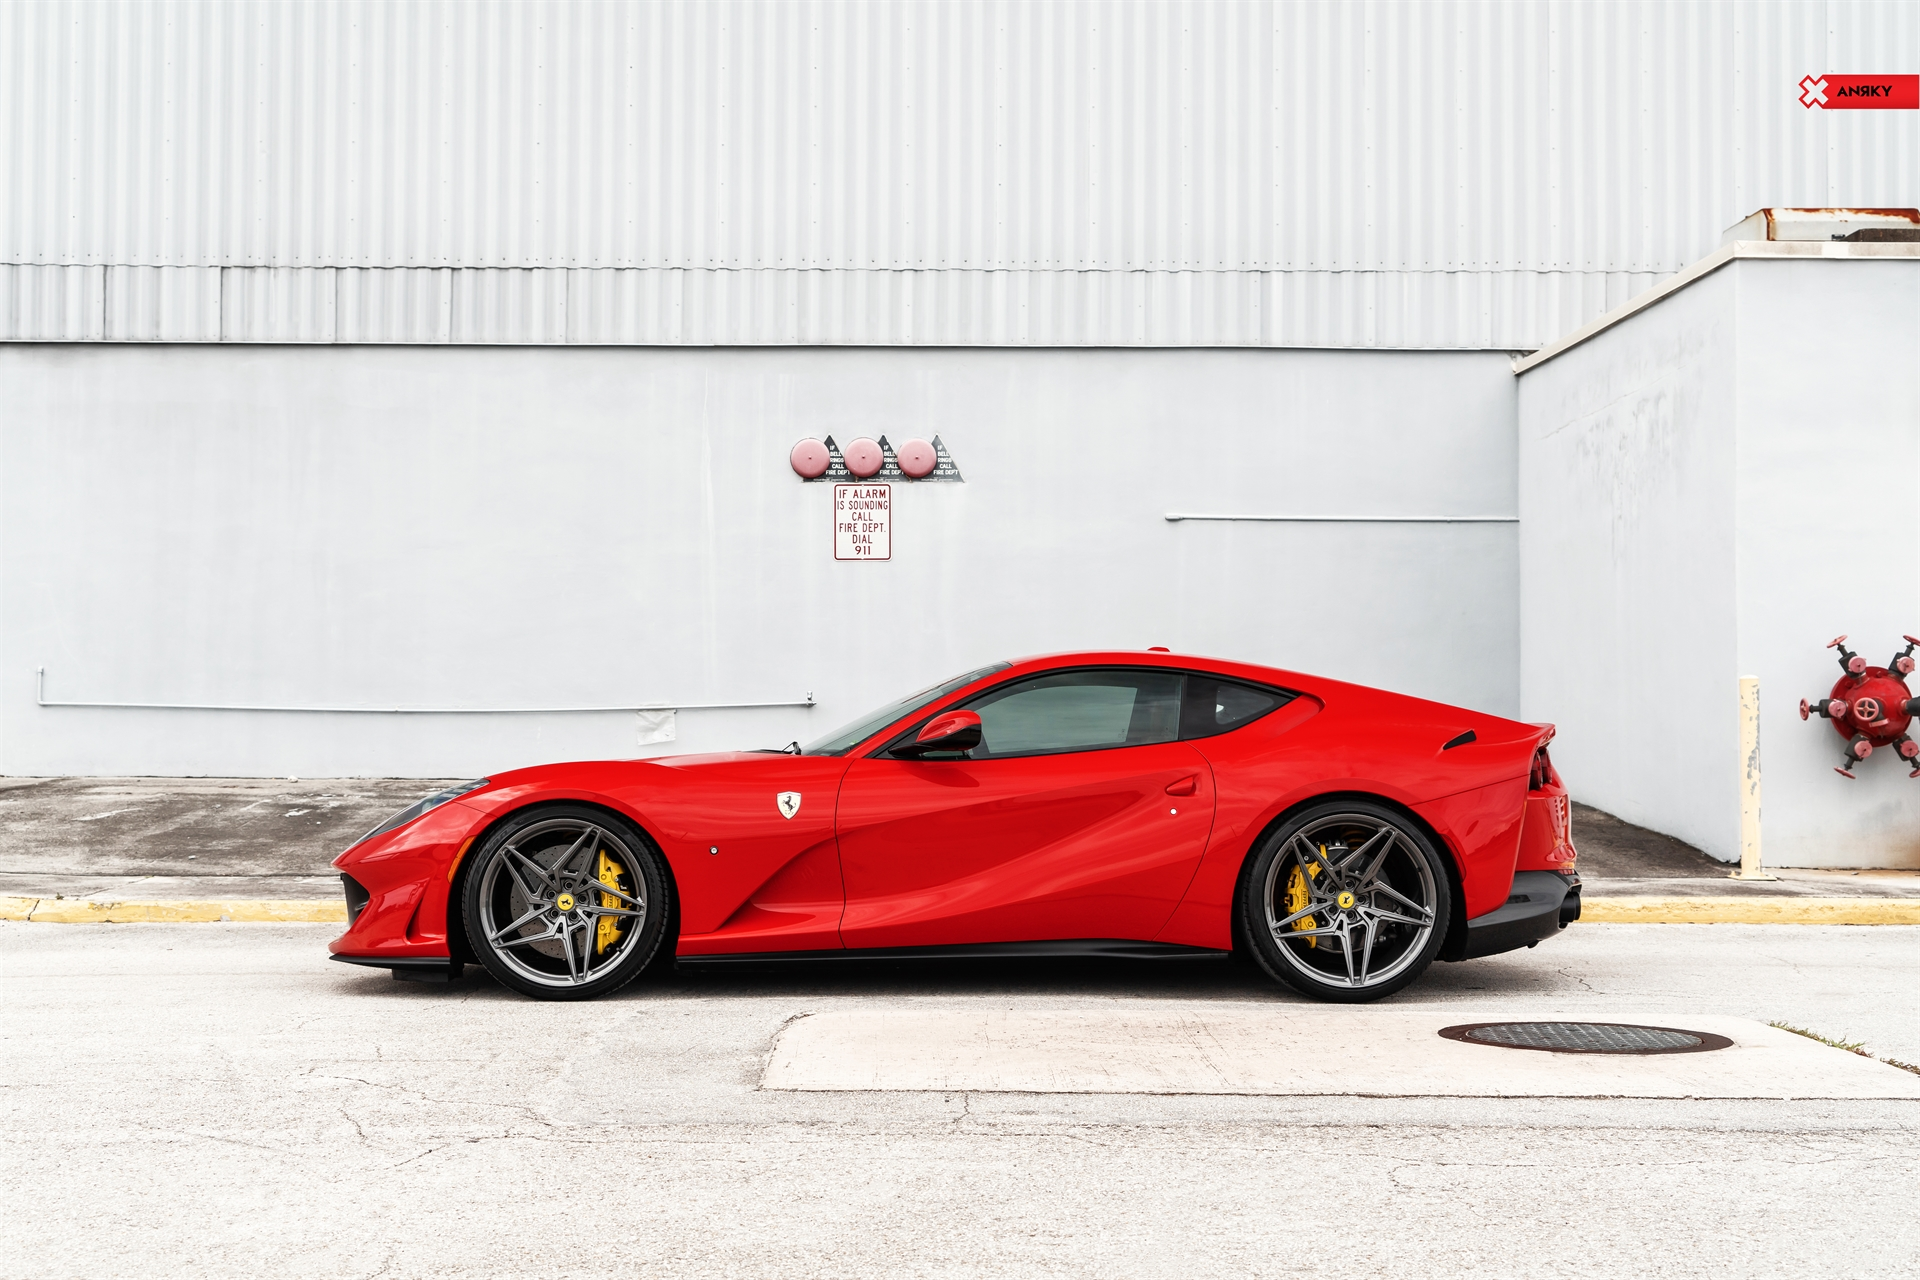 Ferrari 812 Superfast – X|Series S1-X3